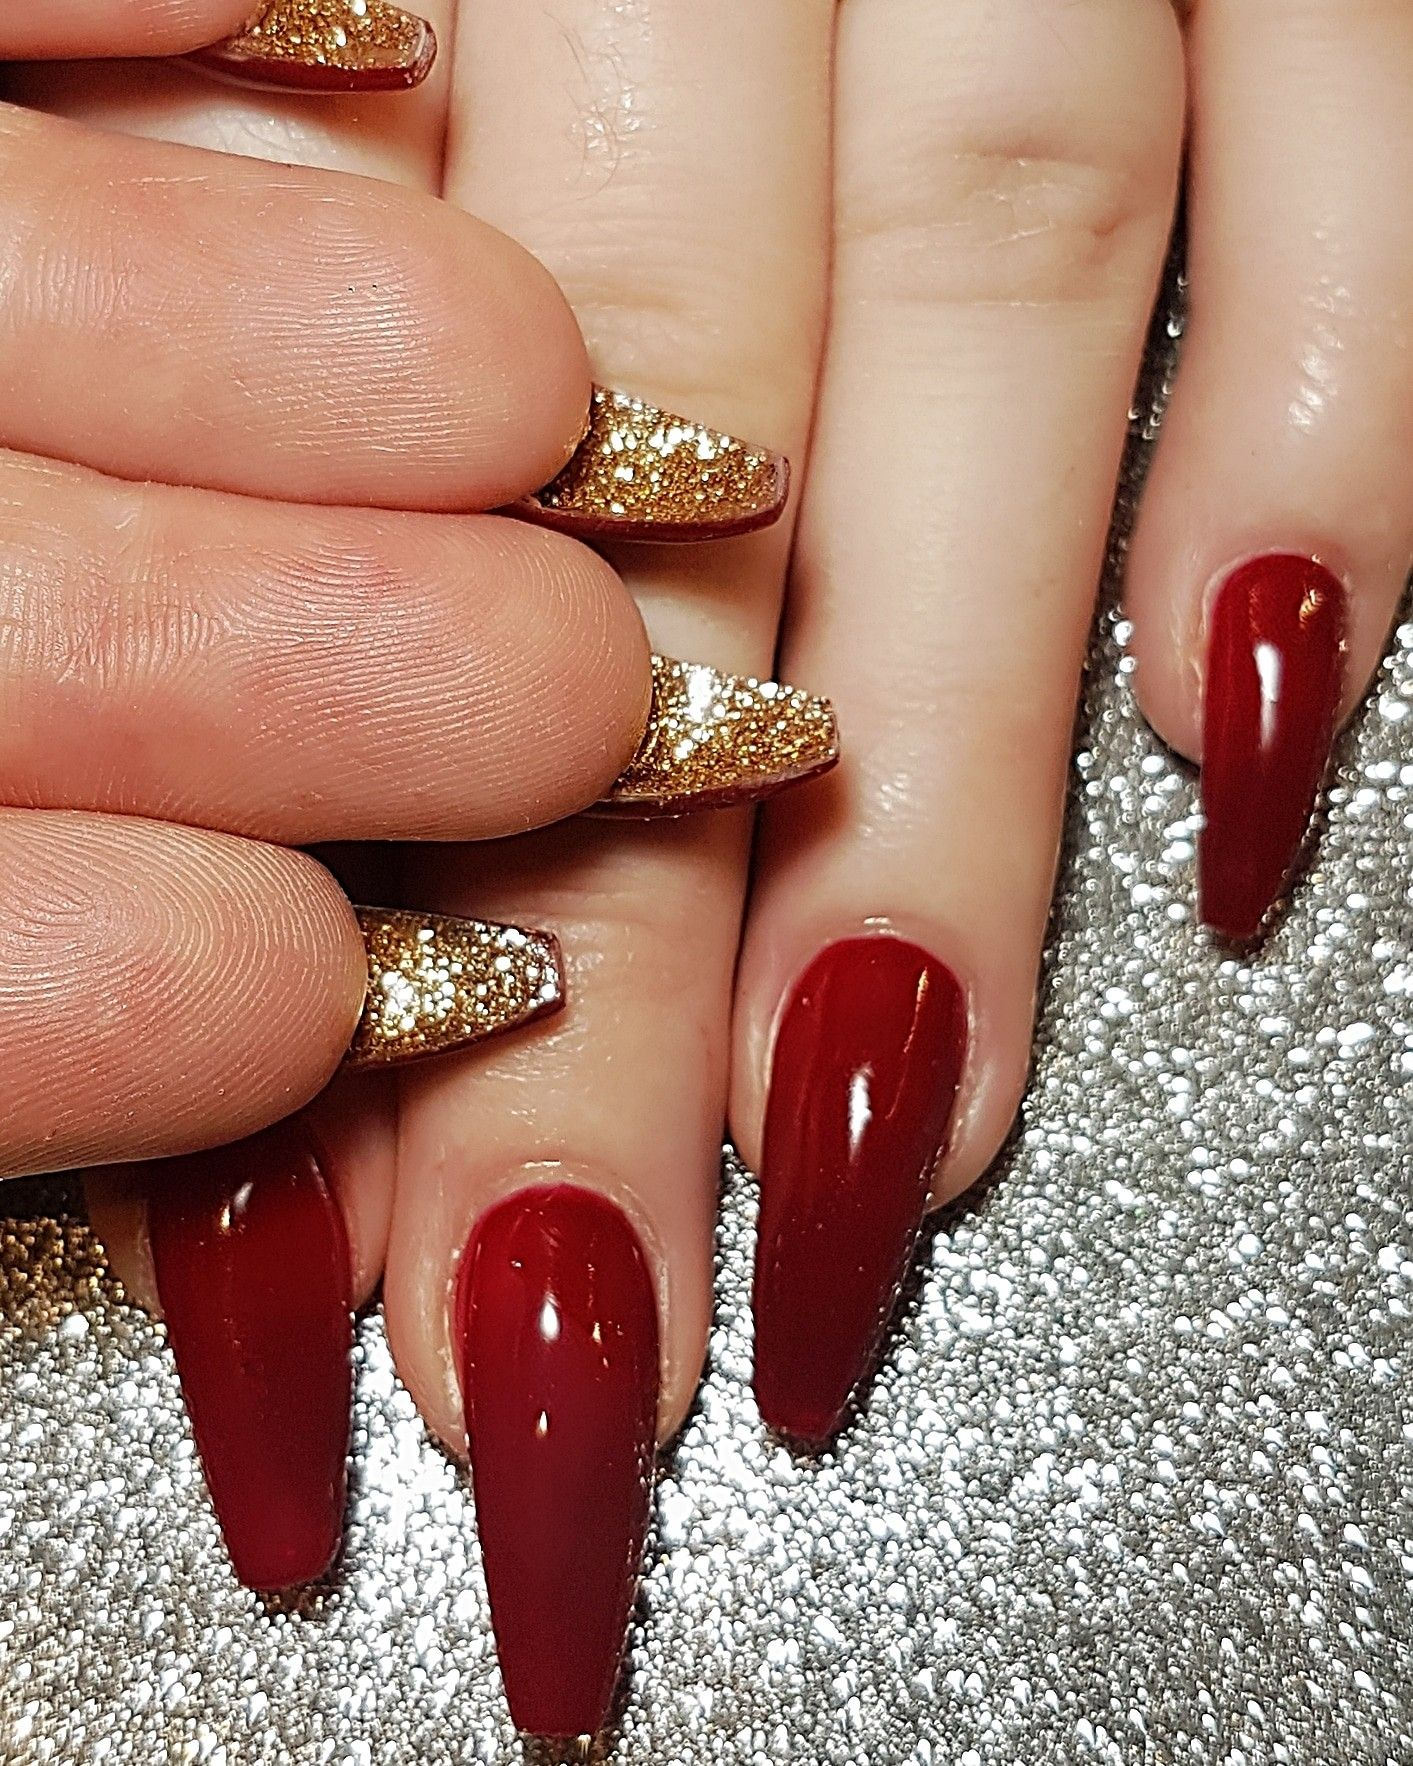 Red Gel Nails With Gold Glitter Underneath Red Gel Nails Red Nails Glitter Gold Nails